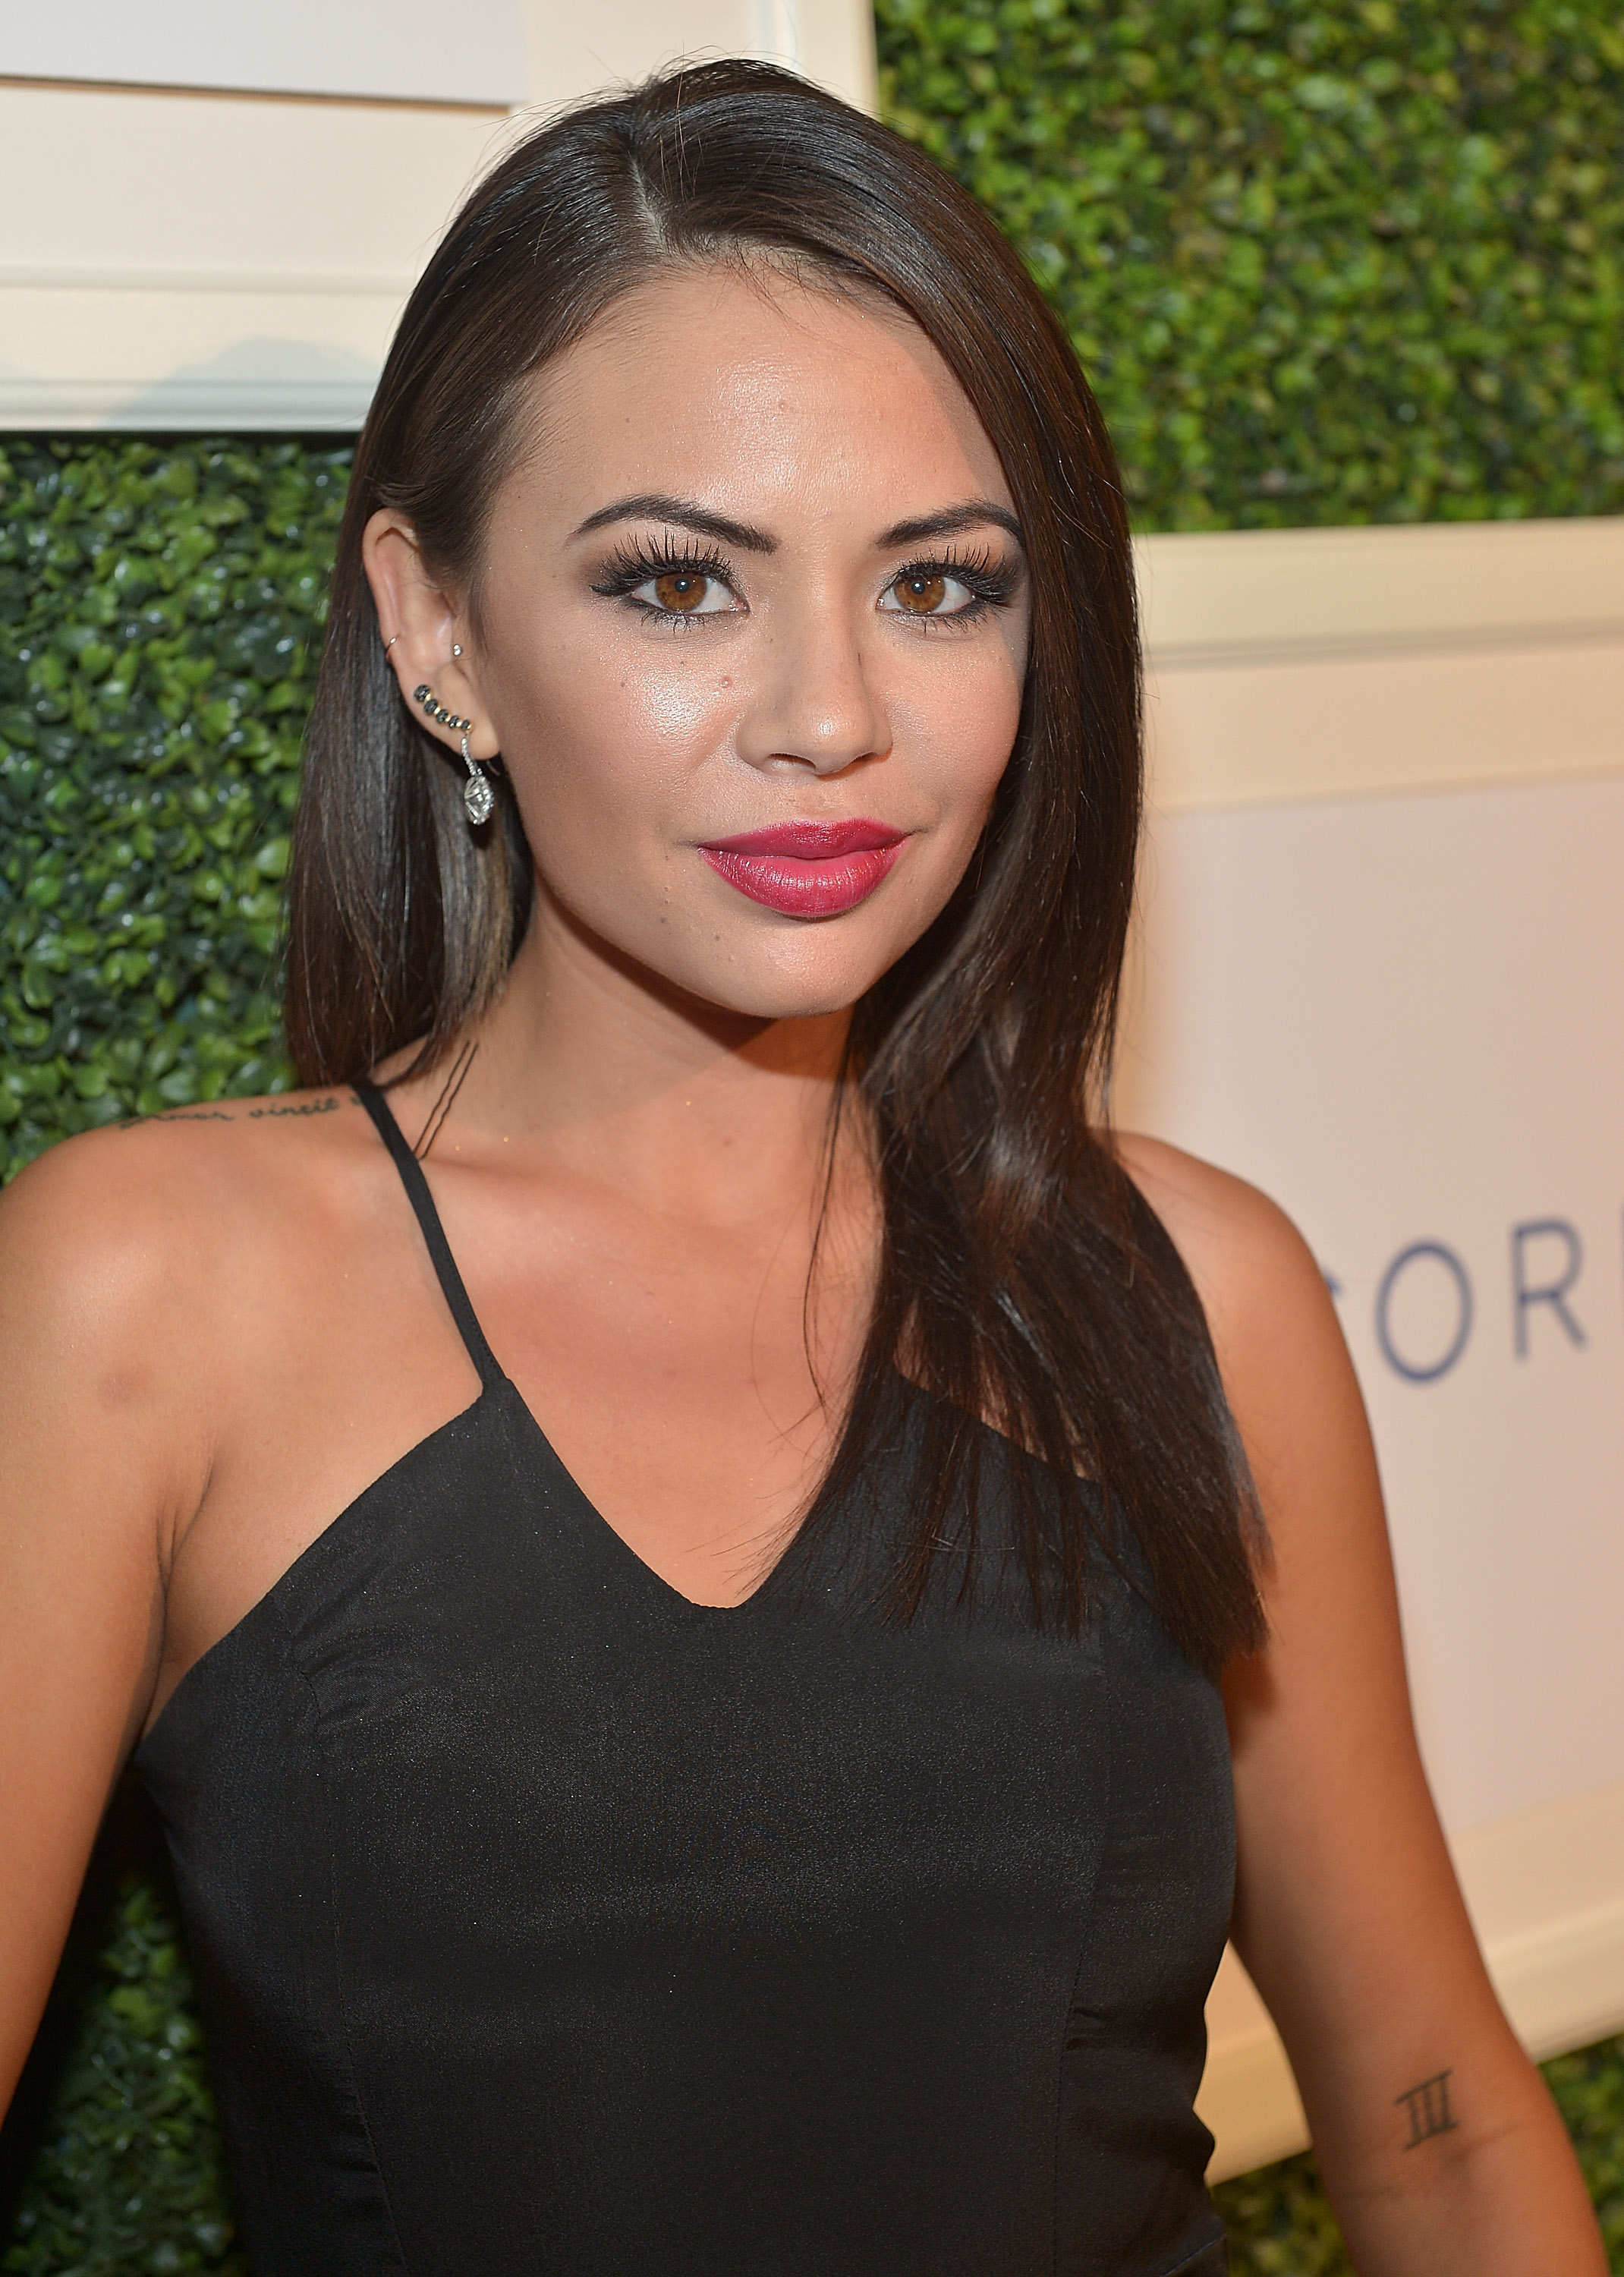 Janel Parrish nudes (58 photo), leaked Feet, Instagram, braless 2016